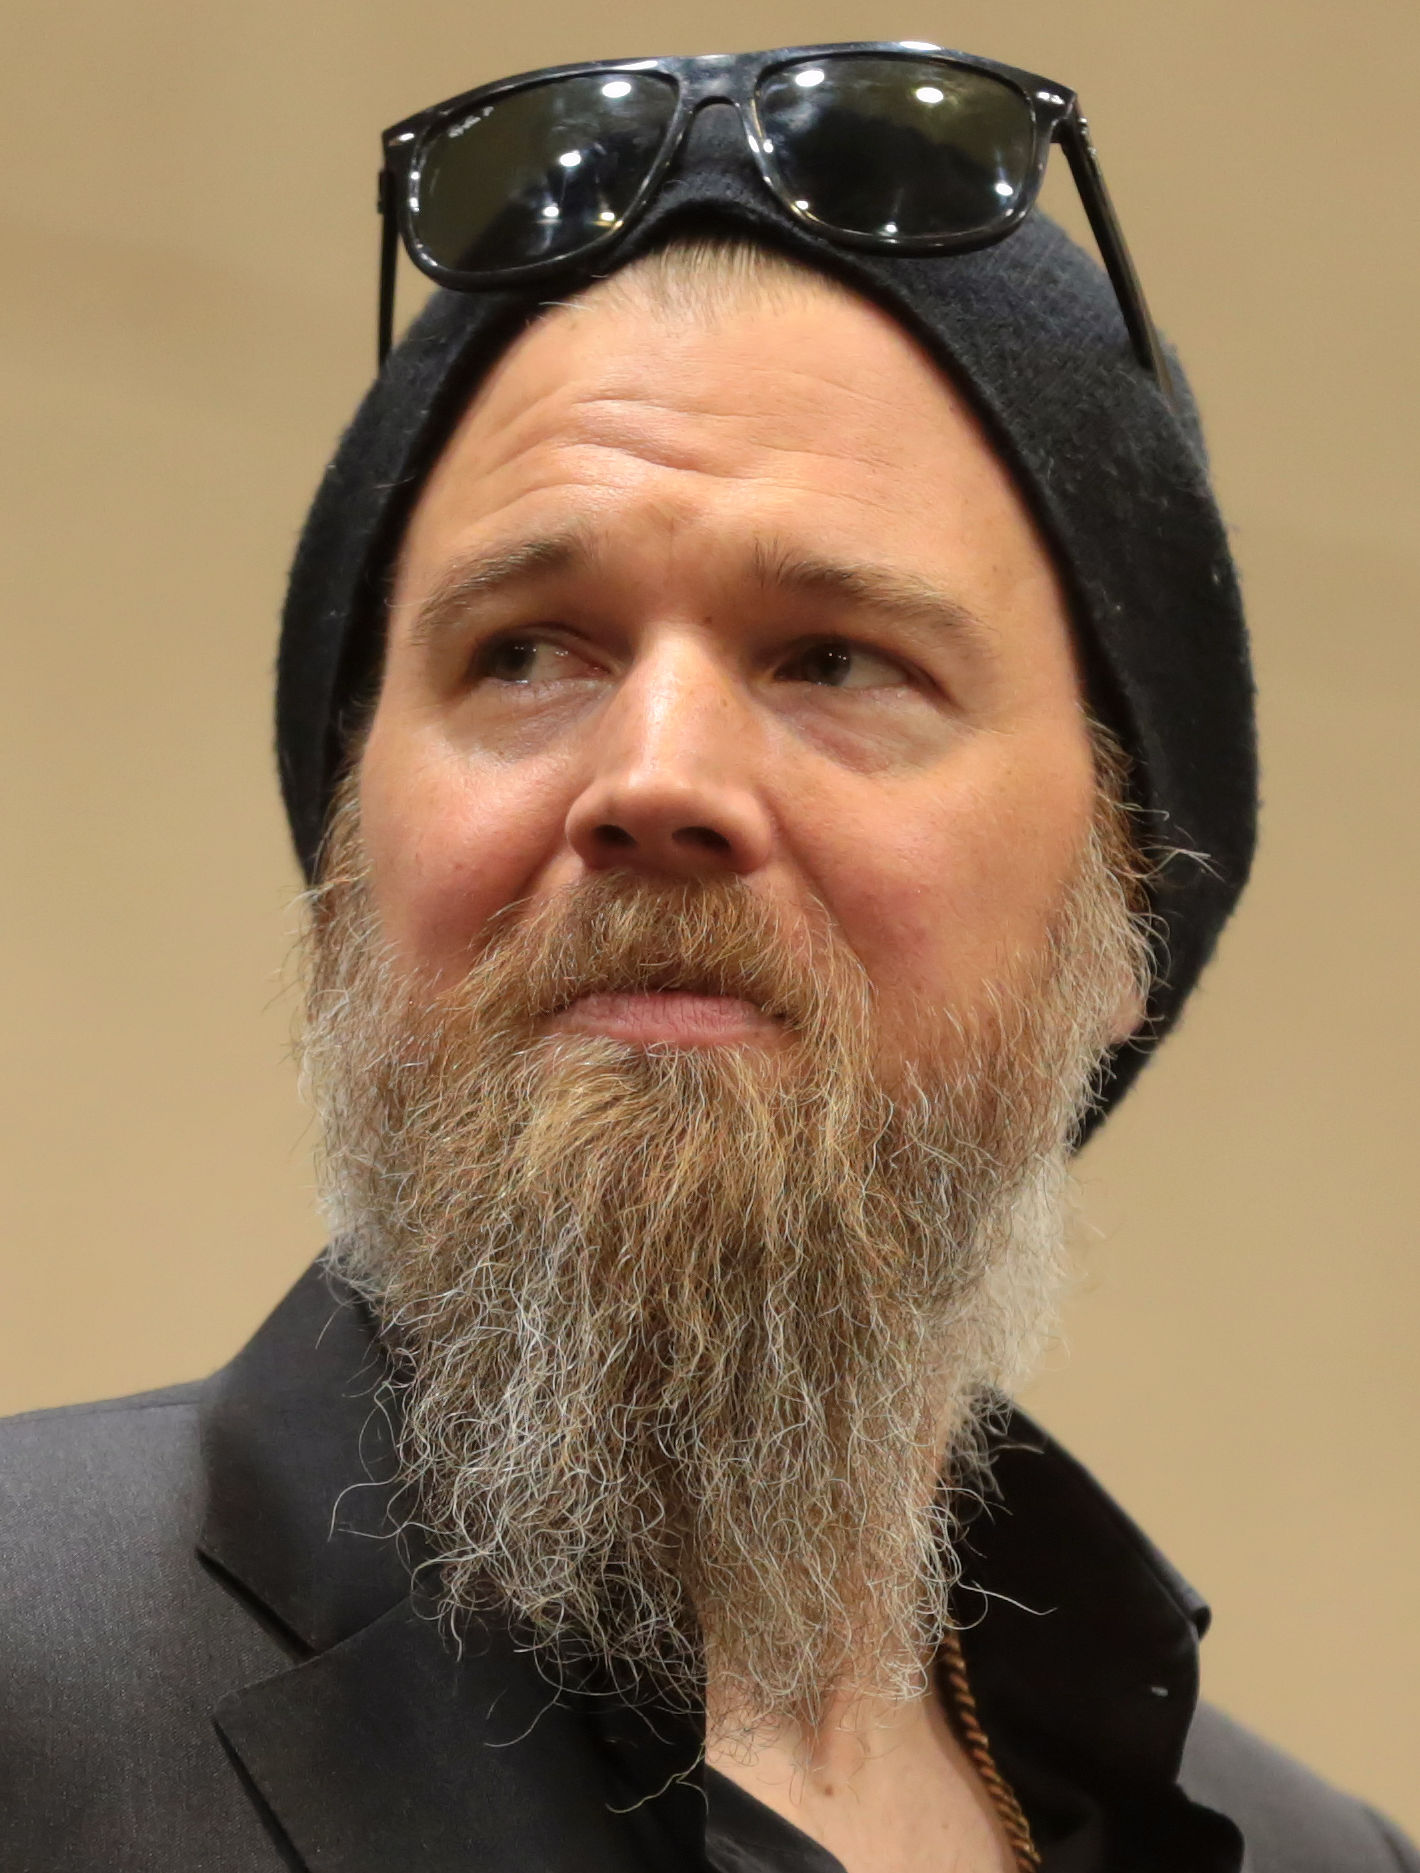 The 42-year old son of father Rick Hurst  and mother Candace Kaniecki Ryan Hurst in 2018 photo. Ryan Hurst earned a  million dollar salary - leaving the net worth at 4 million in 2018